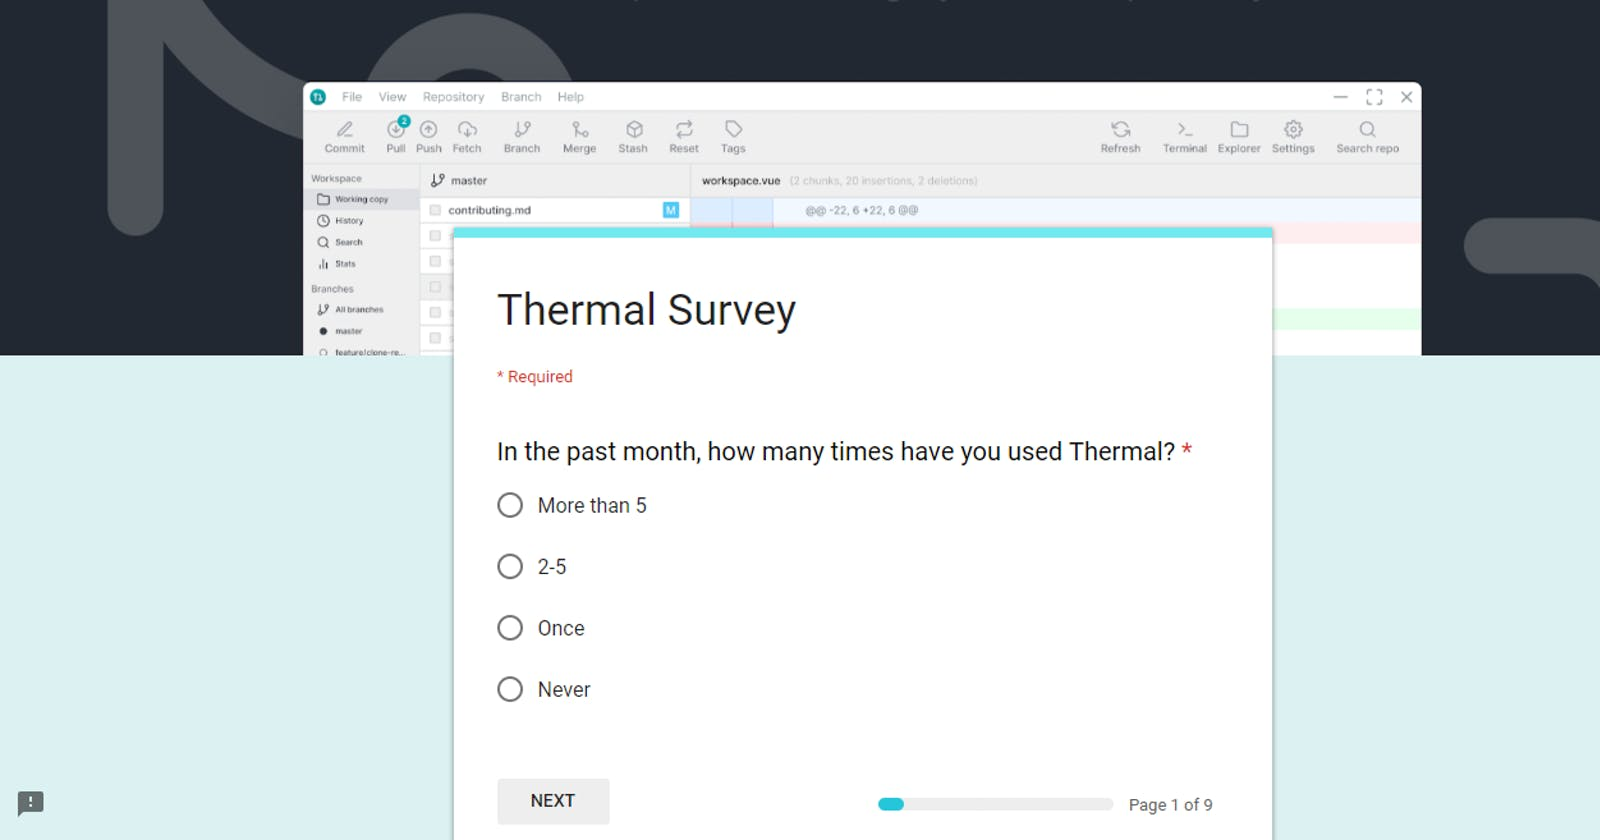 Need your feedback on Thermal project